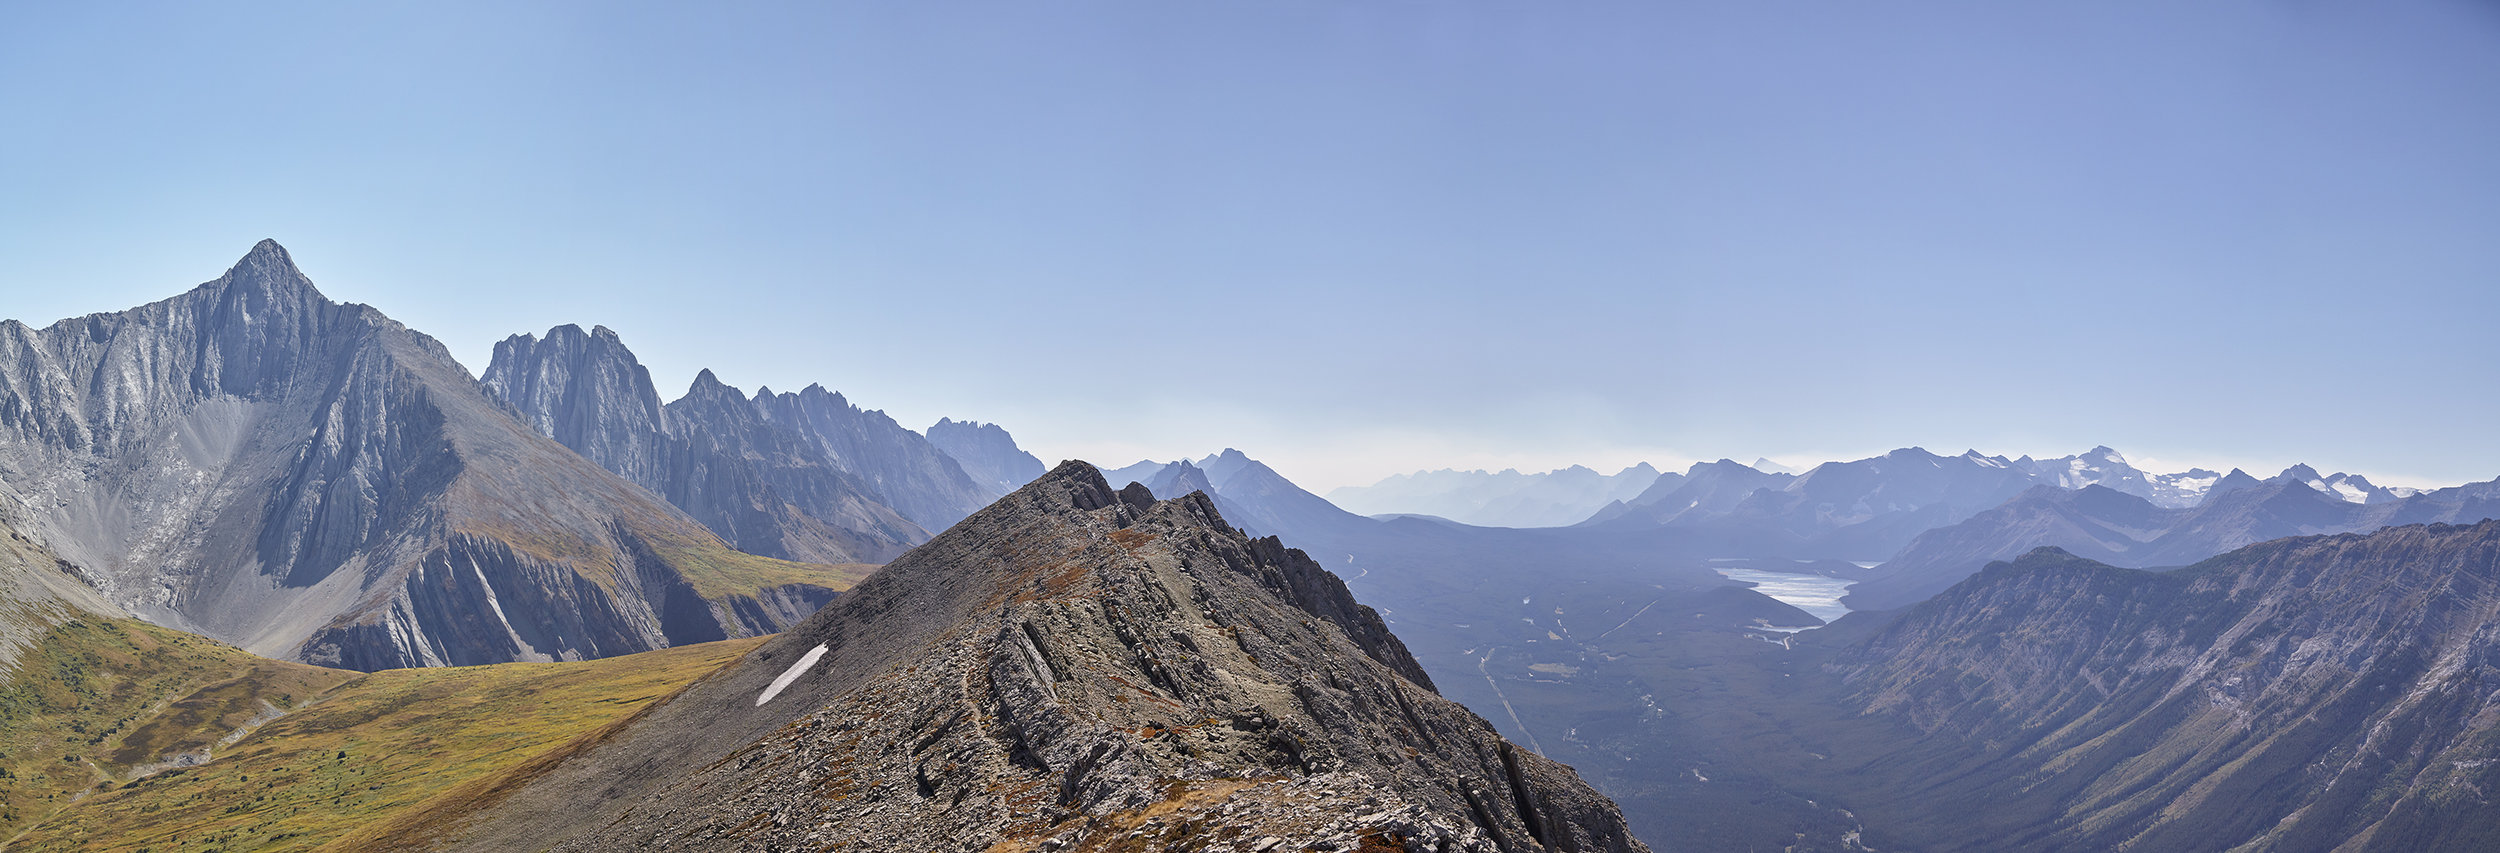 A summit panorama looking south. The sharp peak to the left is Mount Evan-Thomas.